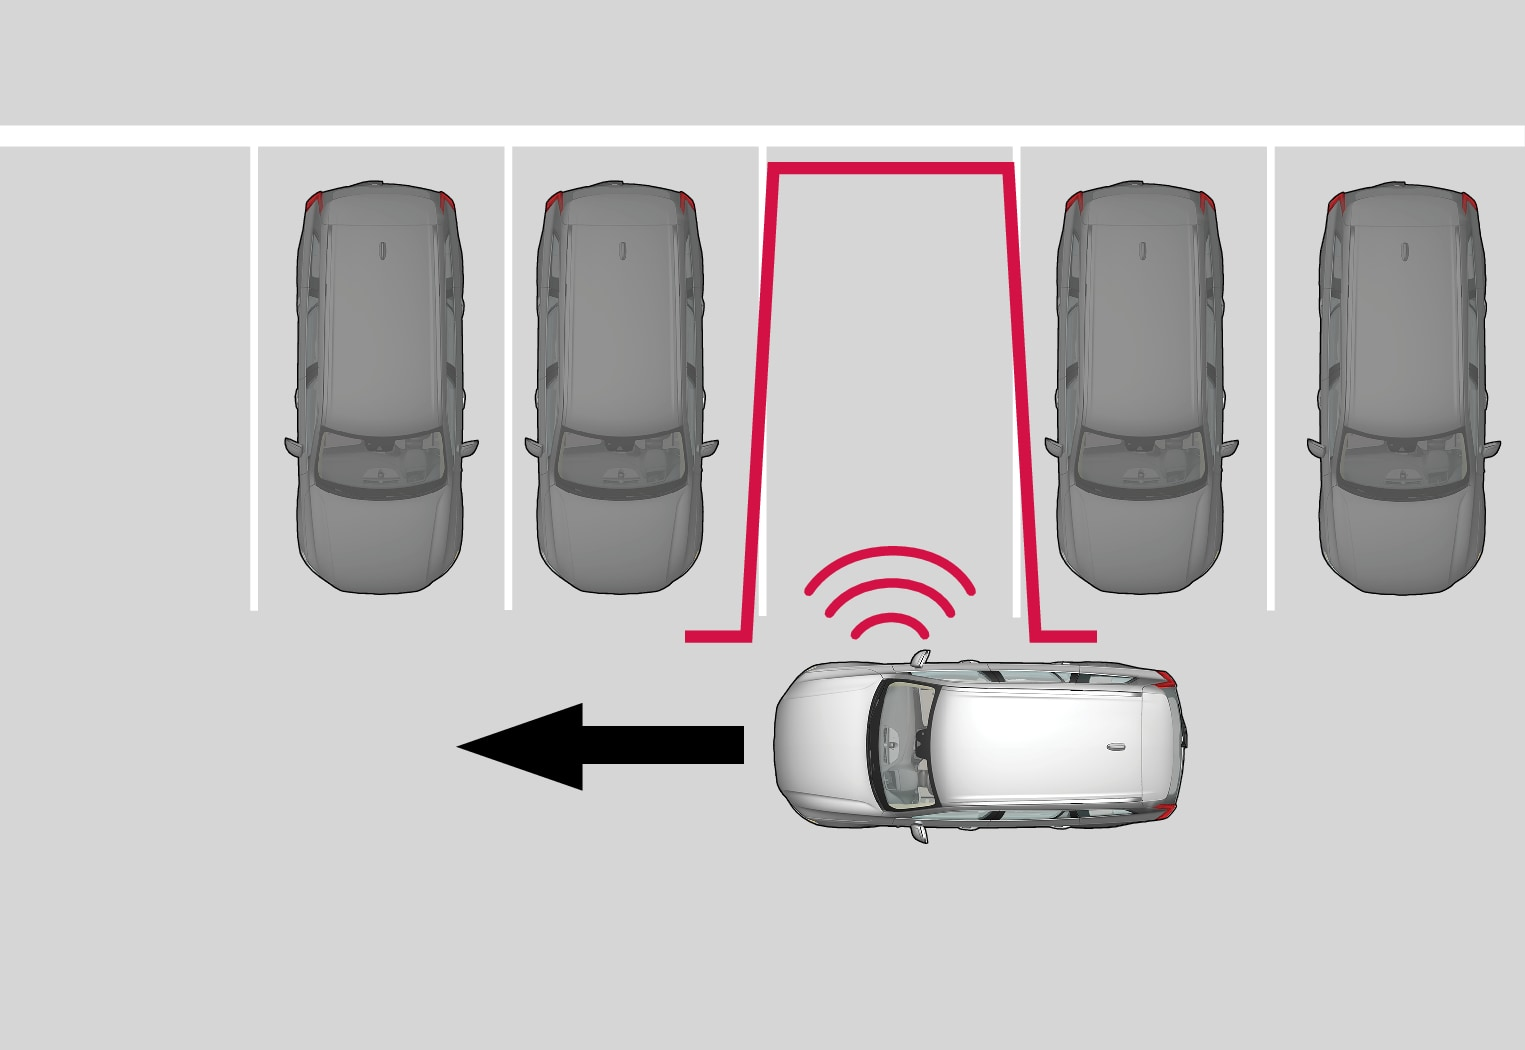 P5-1507-Park Assist Pilot, perpendicular parking Scan + Stop